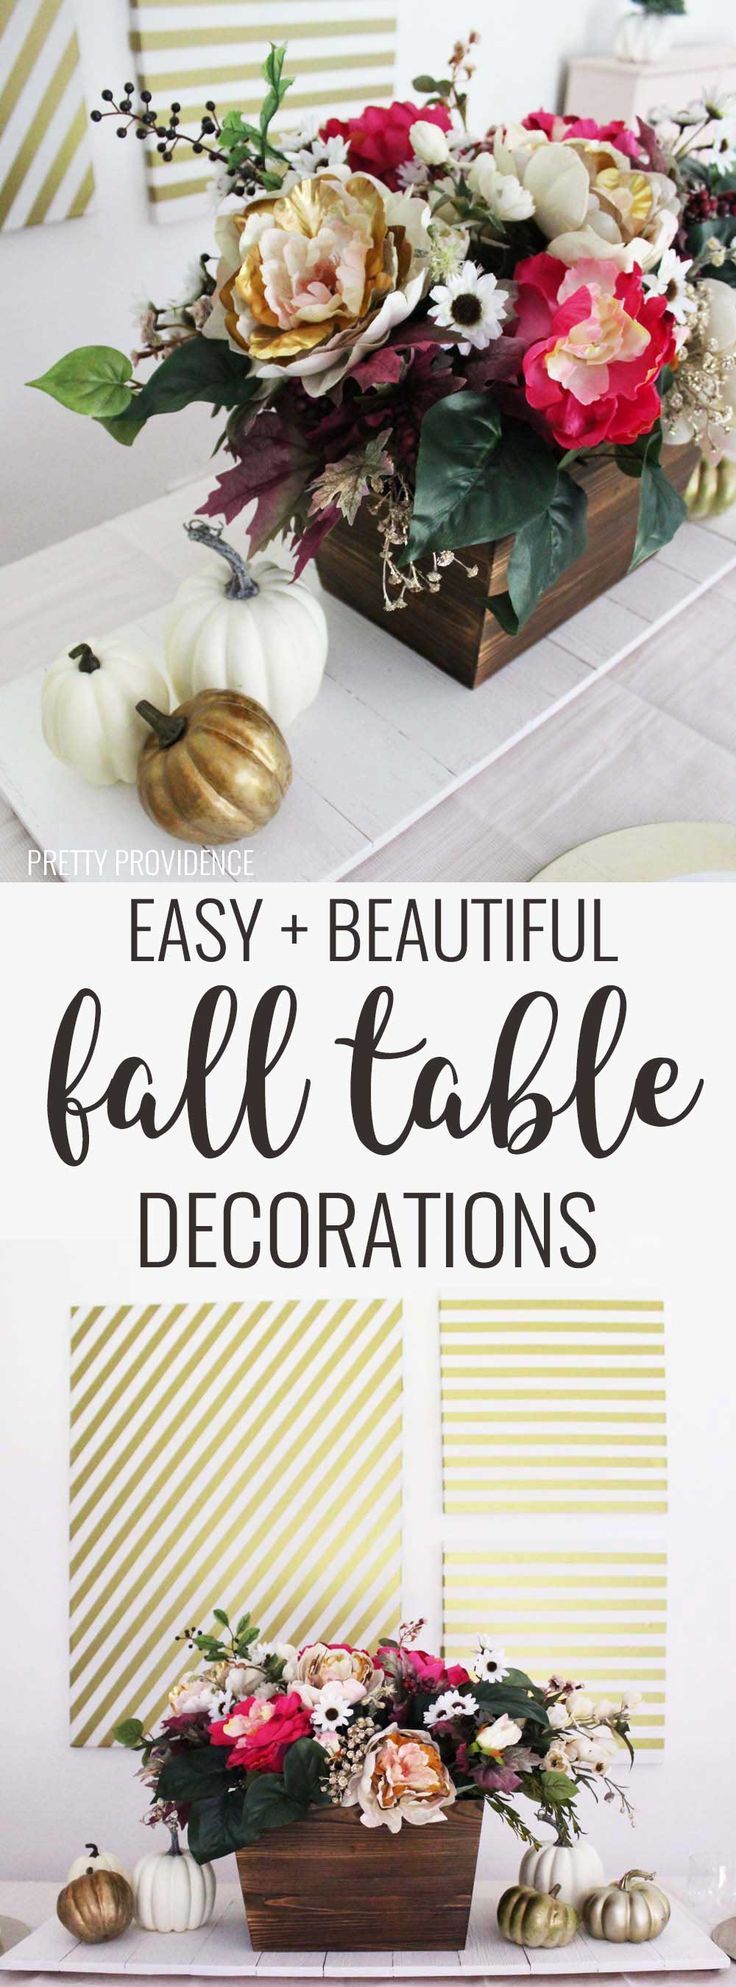 This fall table decor is perfect for thanksgiving!! You can't go wrong with a floral centerpiece and gold table decorations!